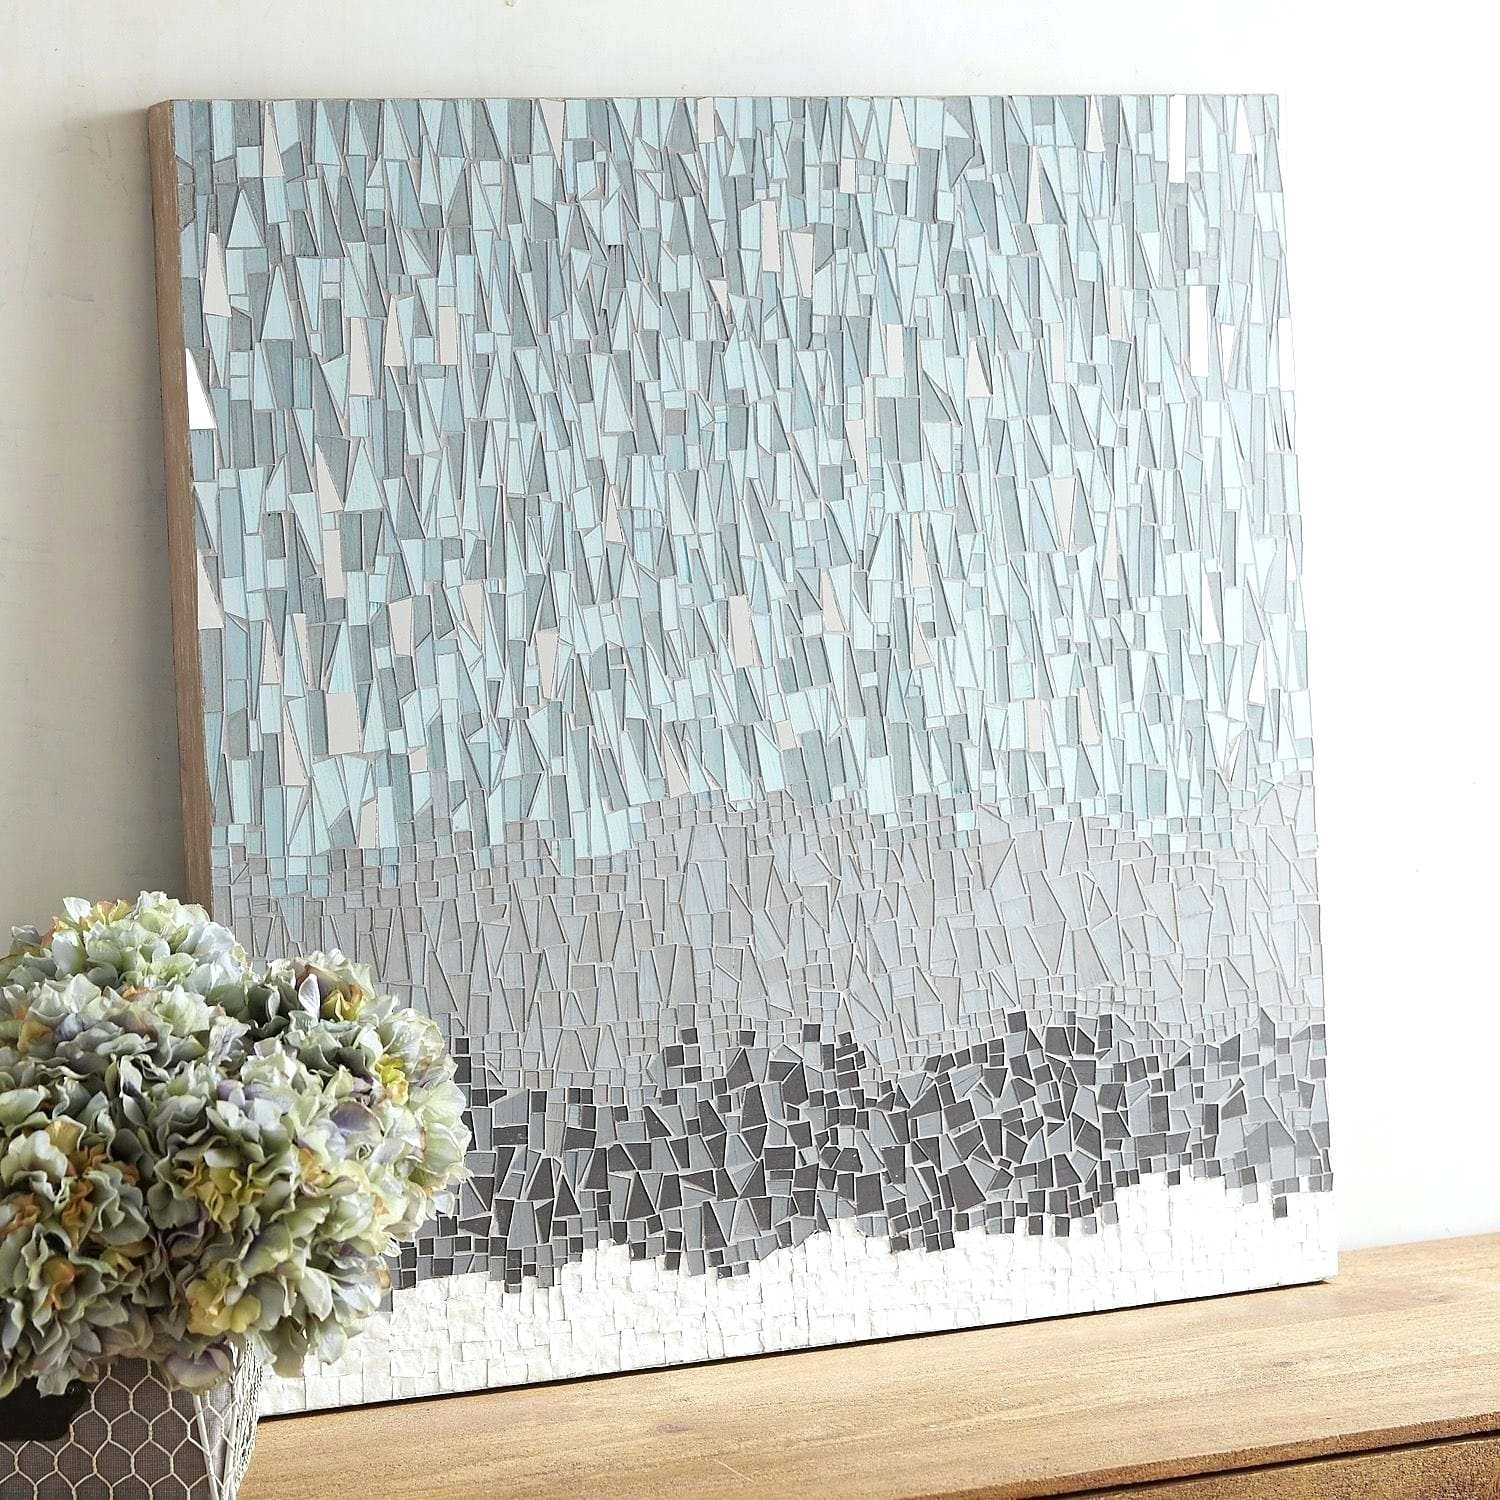 Mosaic Wall Art Glass Mosaic Wall Art For Sale – Ryauxlarsen Regarding Recent Mosaic Wall Art (View 10 of 15)